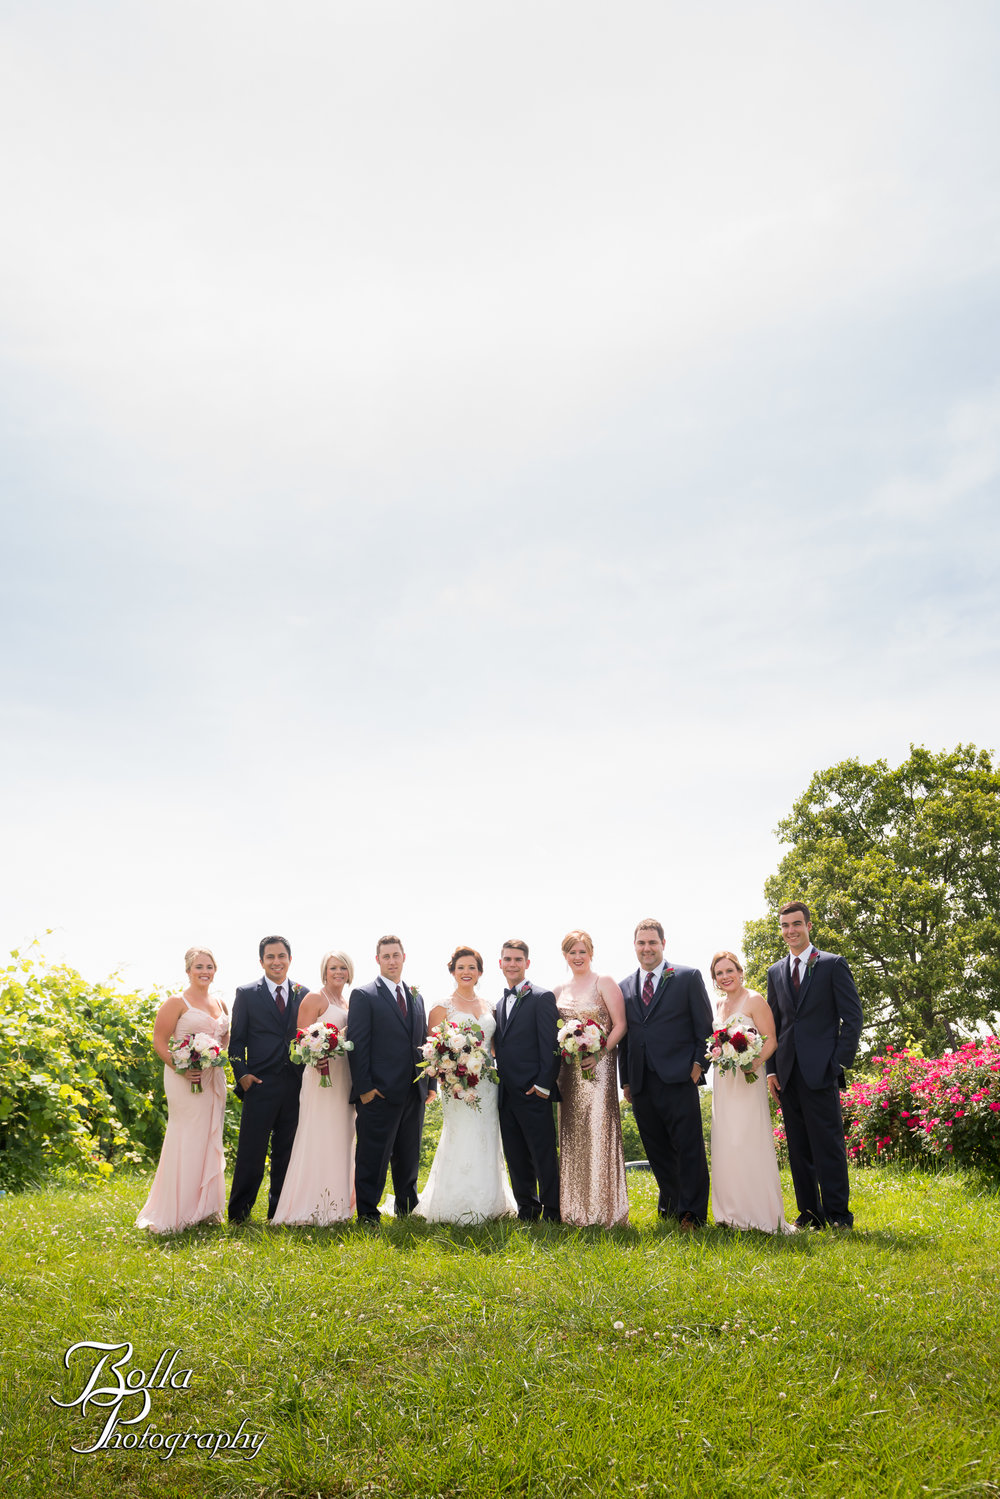 Bolla_photography_edwardsville_wedding_photographer_st_louis_weddings_Chaumette_winery_Mikusch-0212.jpg